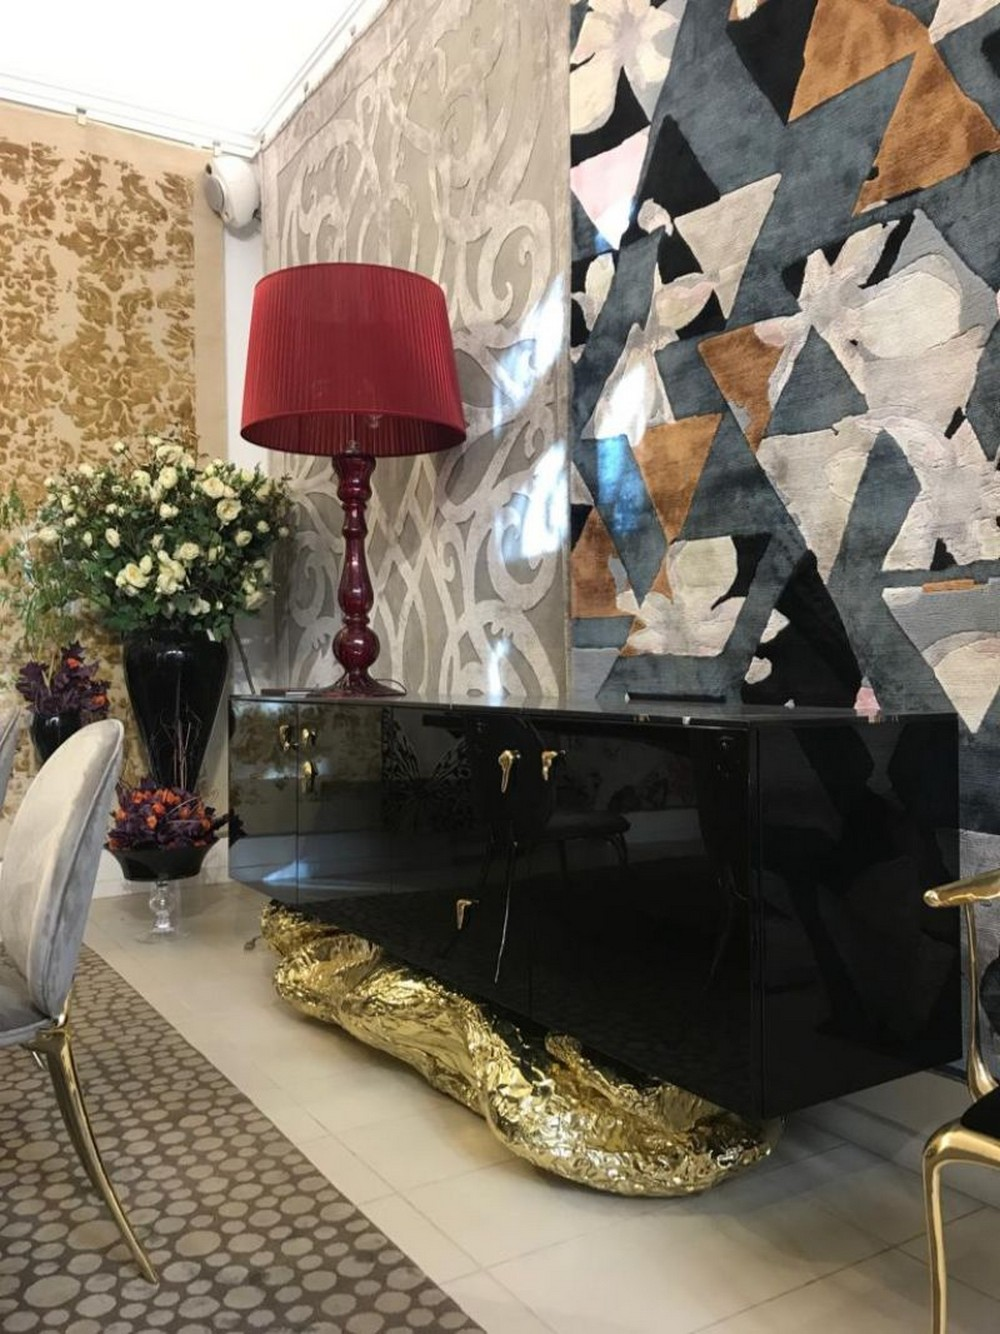 Inspirational Art Déco Design Ideas From Two Top Luxury Design Brands inspirational art déco design ideas Inspirational Art Déco Design Ideas From Two Top Luxury Design Brands Inspirational Art D  co Design Ideas From Two Top Luxury Design Brands 3